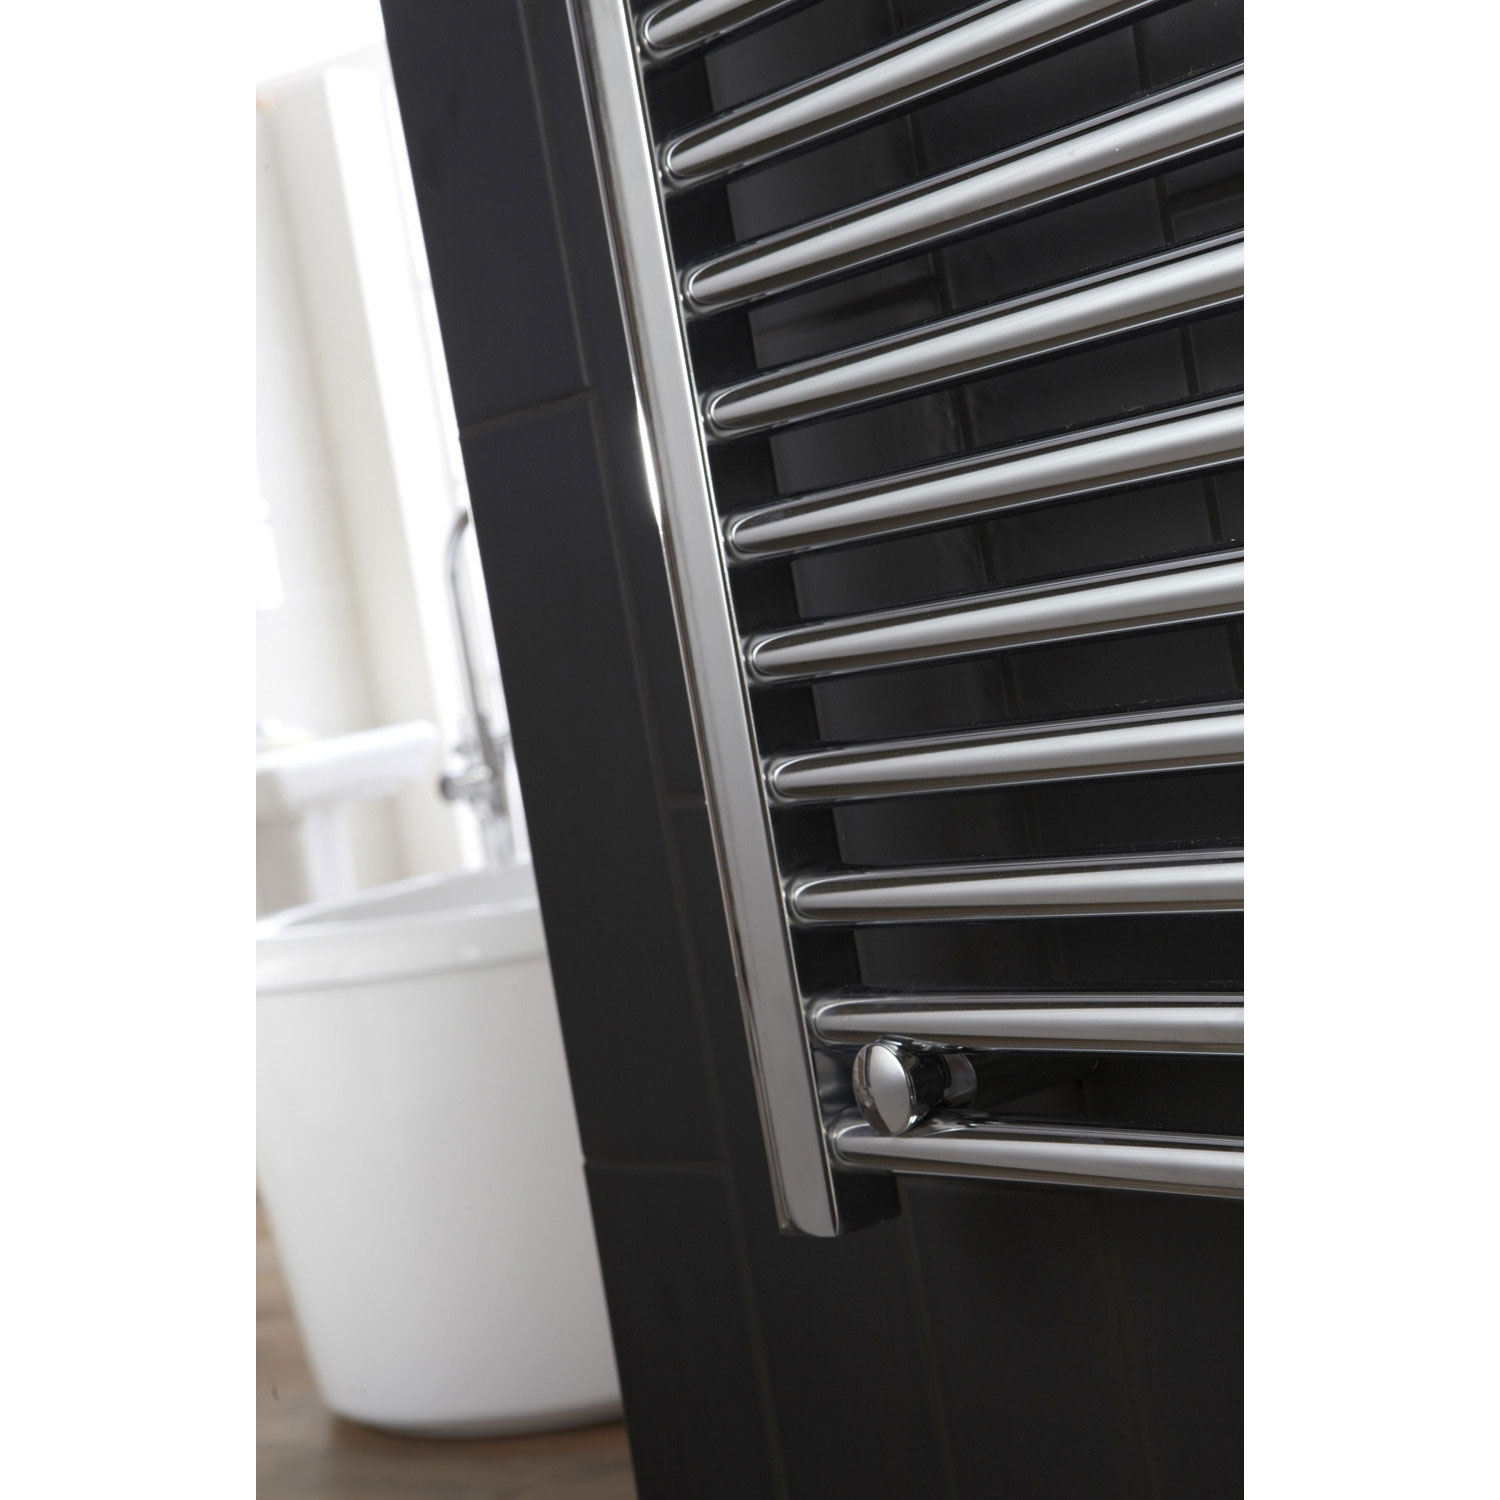 Verona Flat Designer Heated Towel Rail 1100mm H x 450mm W Chrome